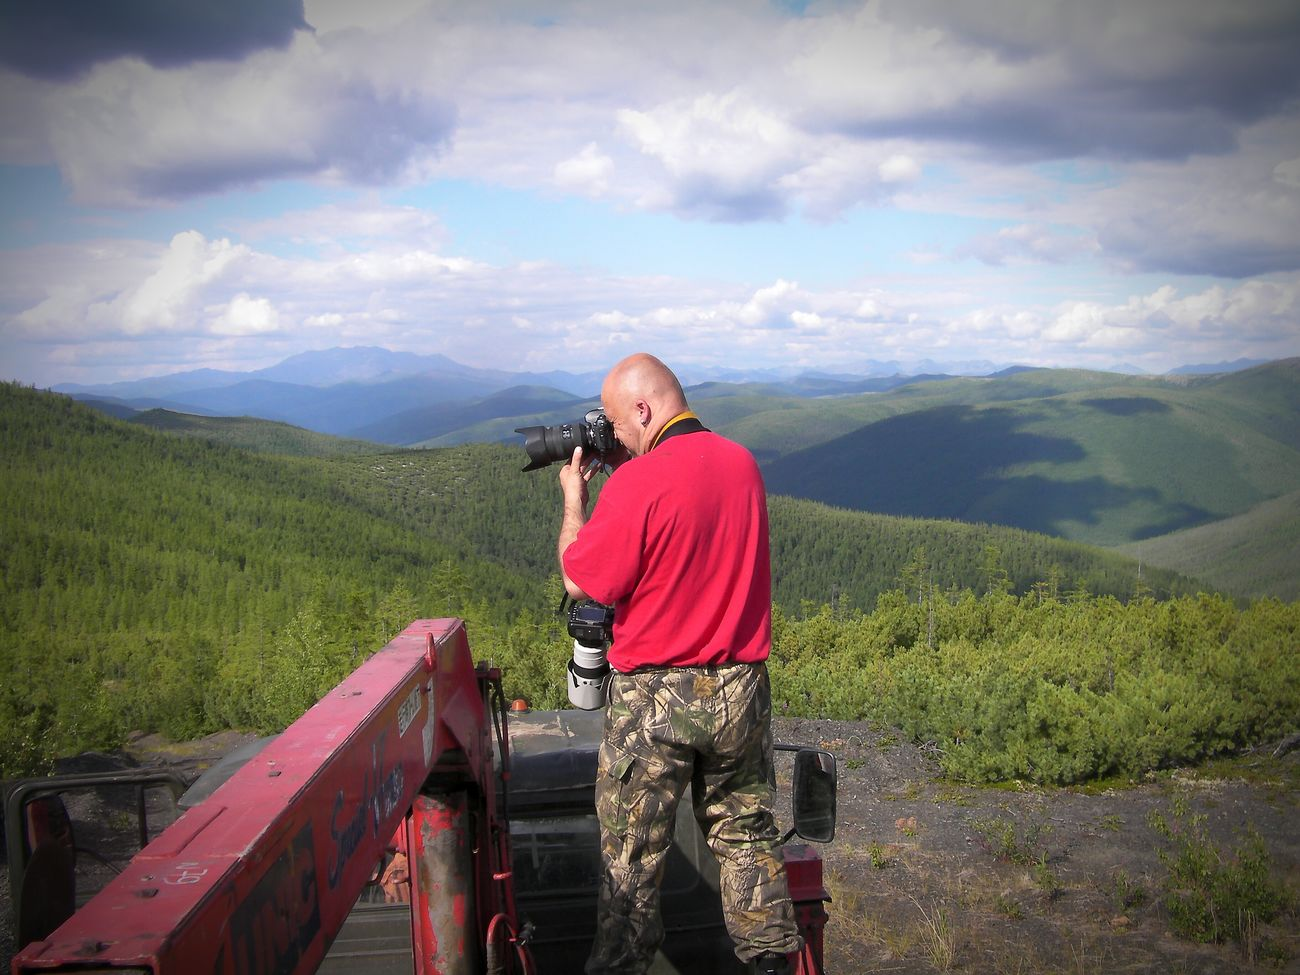 The Adventure Handbook Yakutia Ynykchan Landscape Taking Photo Nature TripEnjoying Life Mountains Photographer Truck